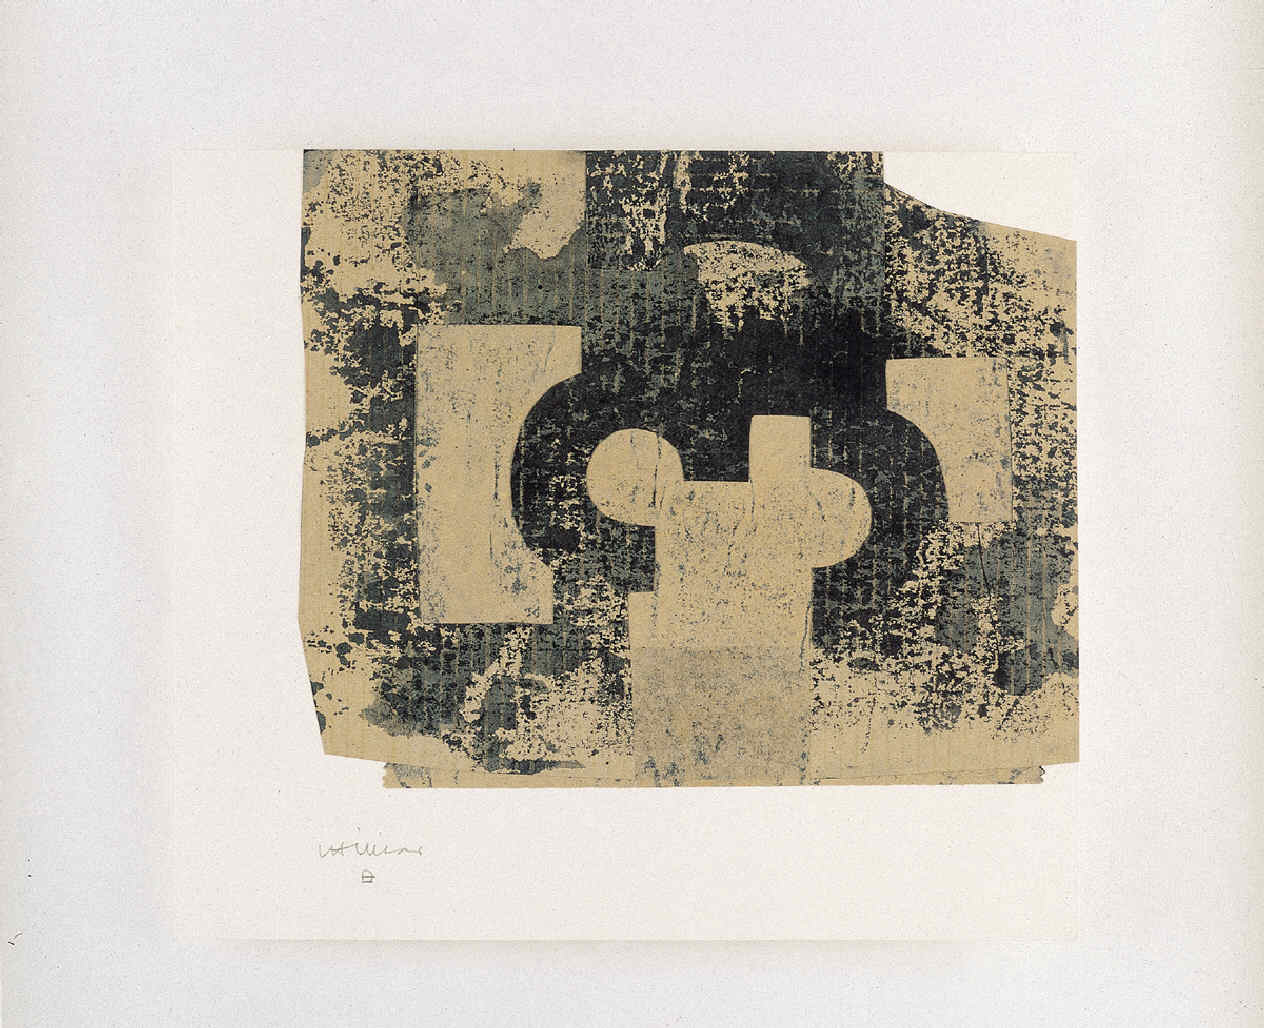 CHILLIDA, Eduardo, <i>Collage beige y dibujo</i>